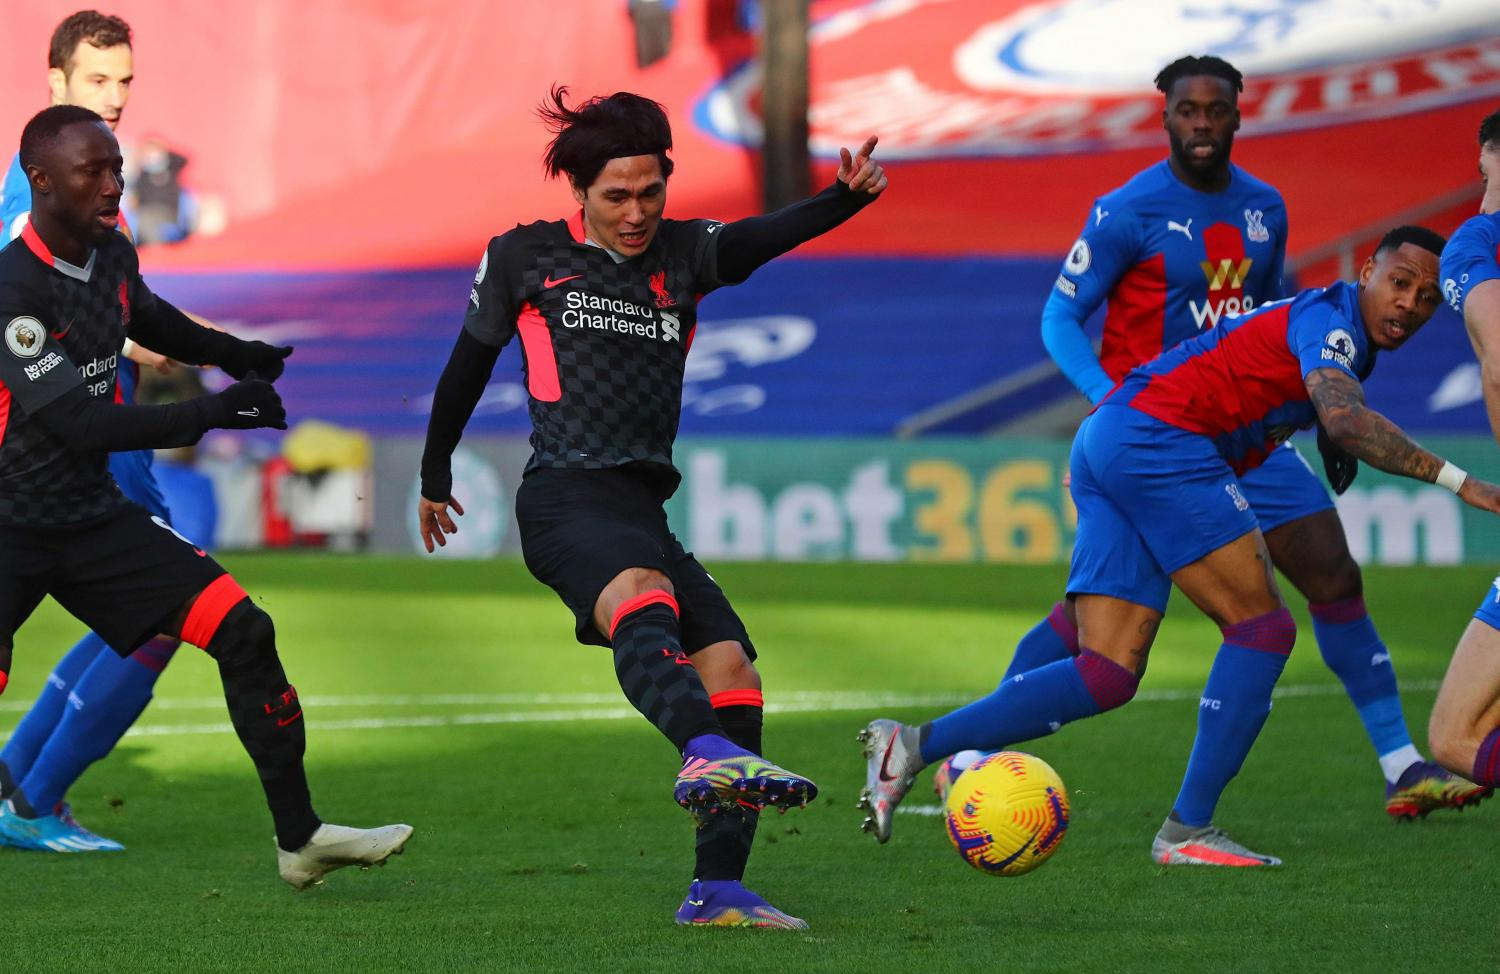 Liverpool can improve after seven-goal thrashing of Palace